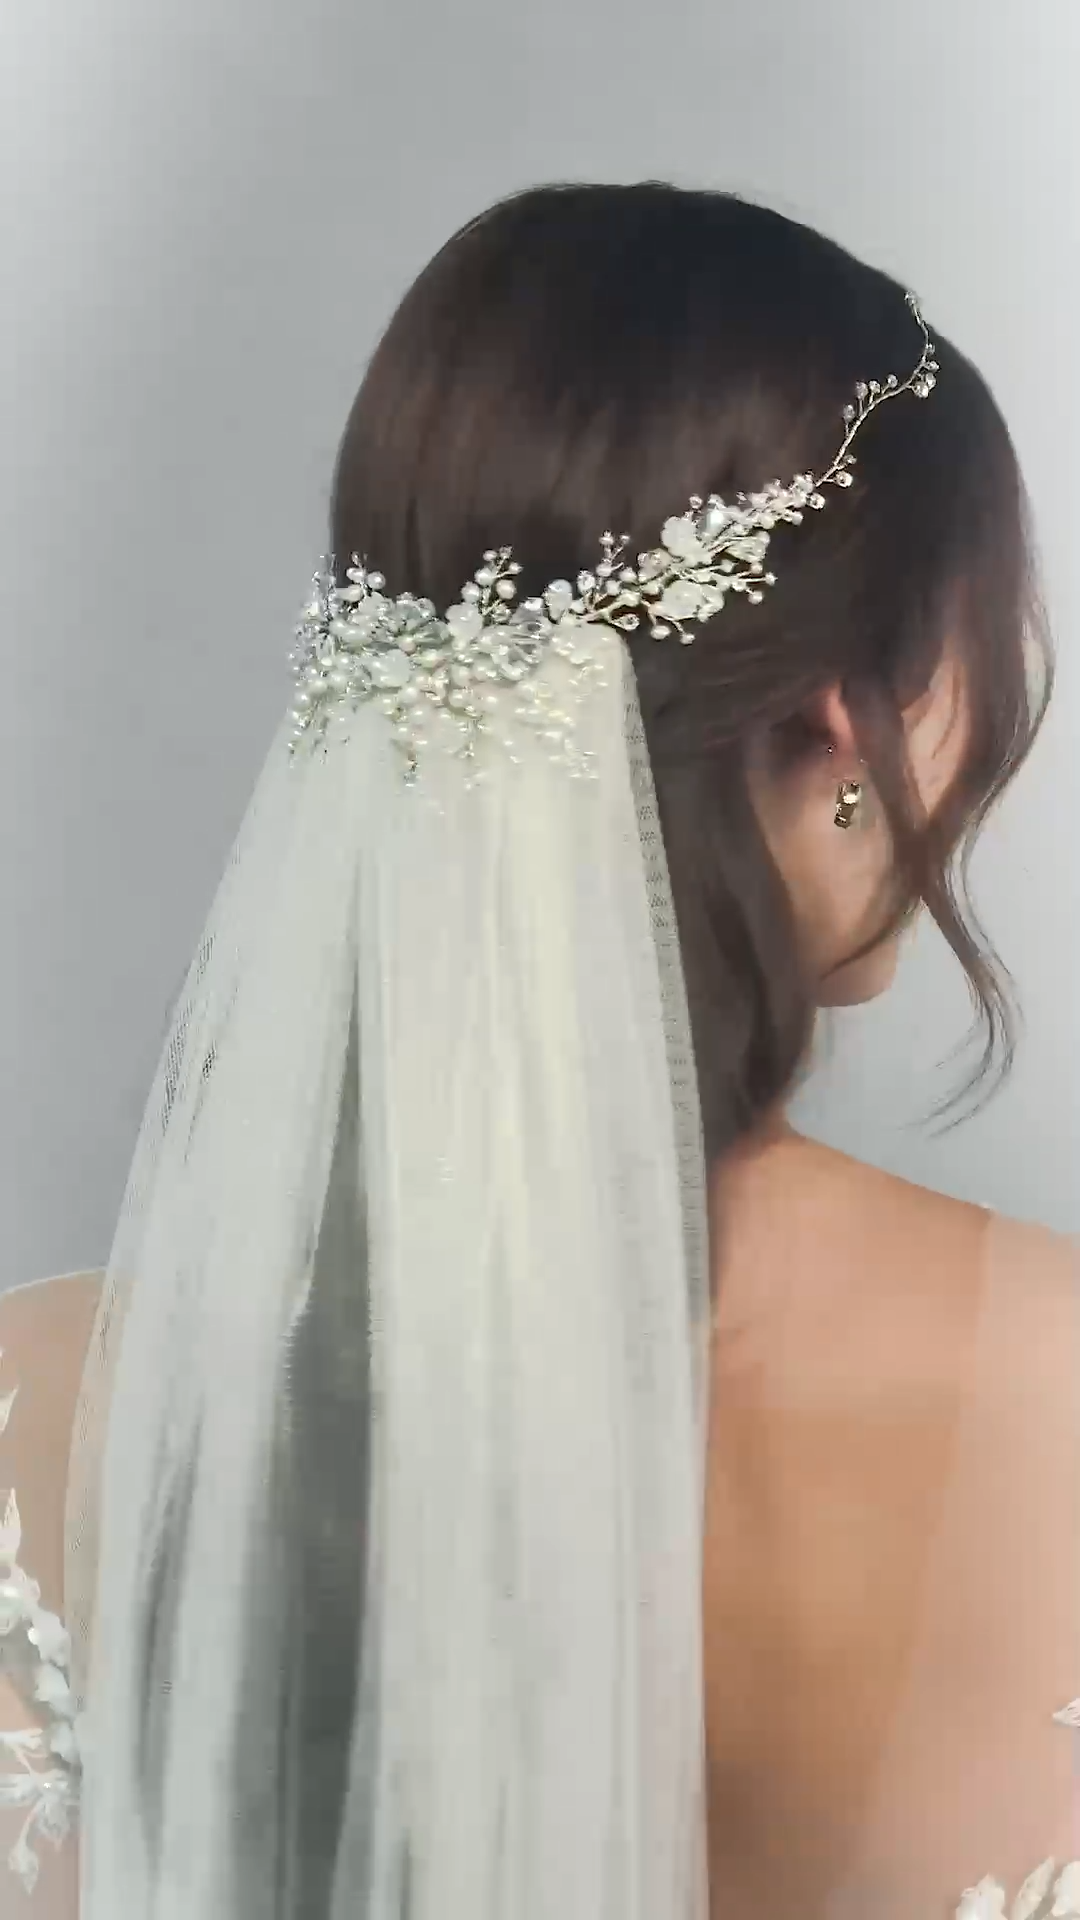 Cordelia Crystal Headpiece and Dewdrop Hairvine-hair accessories, wedding hairstyle, bridal look #bridalheadpieces